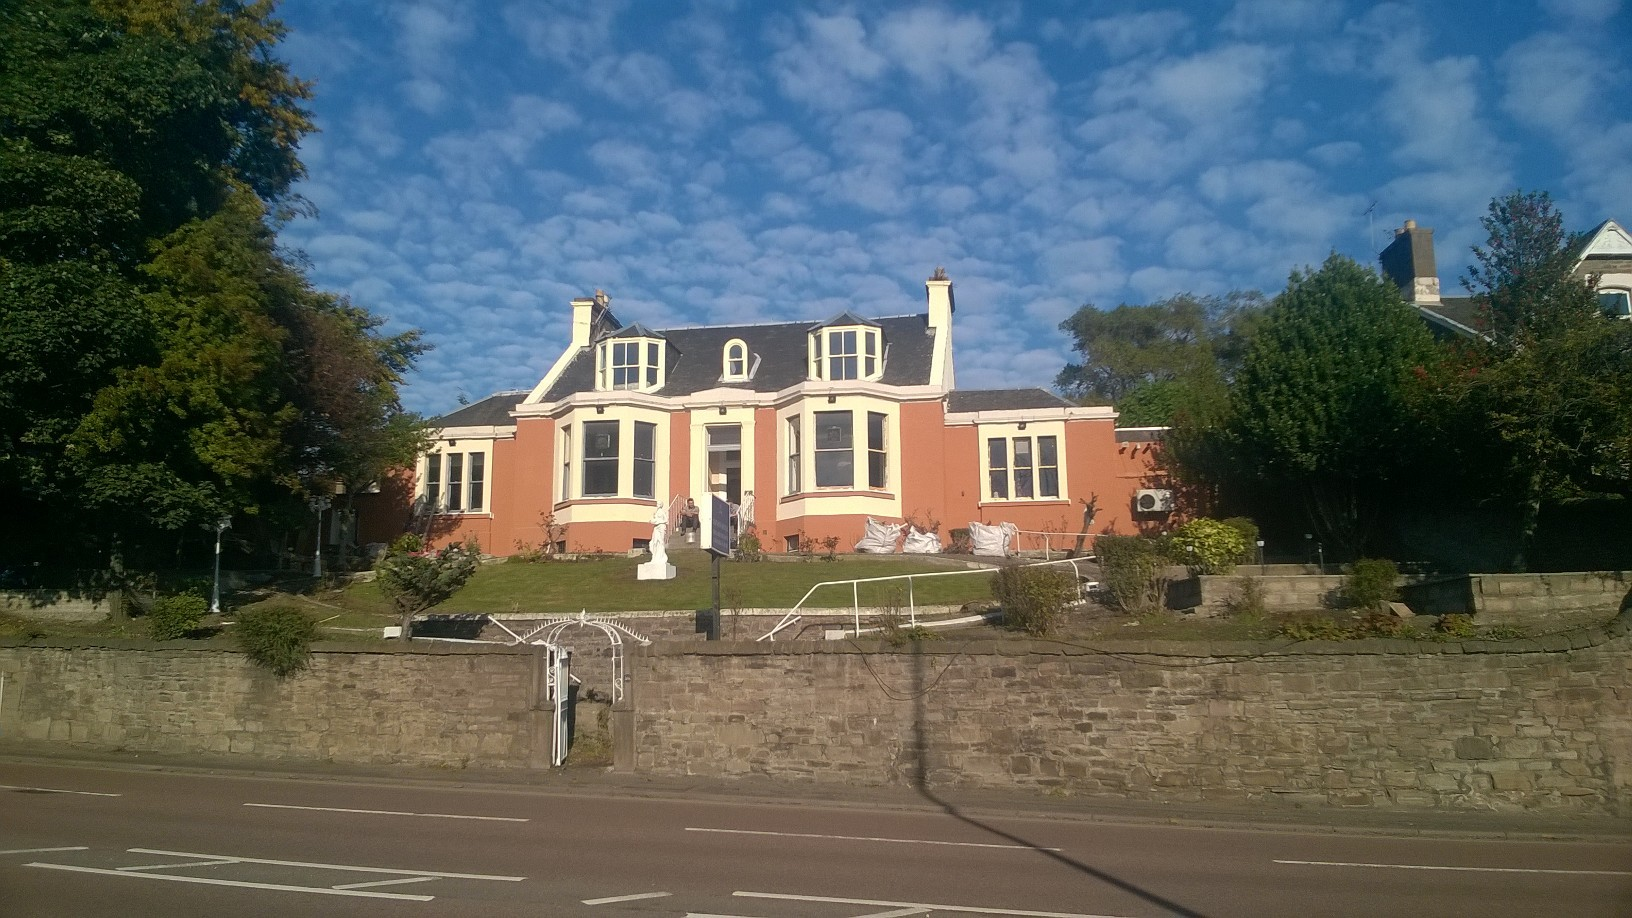 The Tayview Hotel on Broughty Ferry Road.